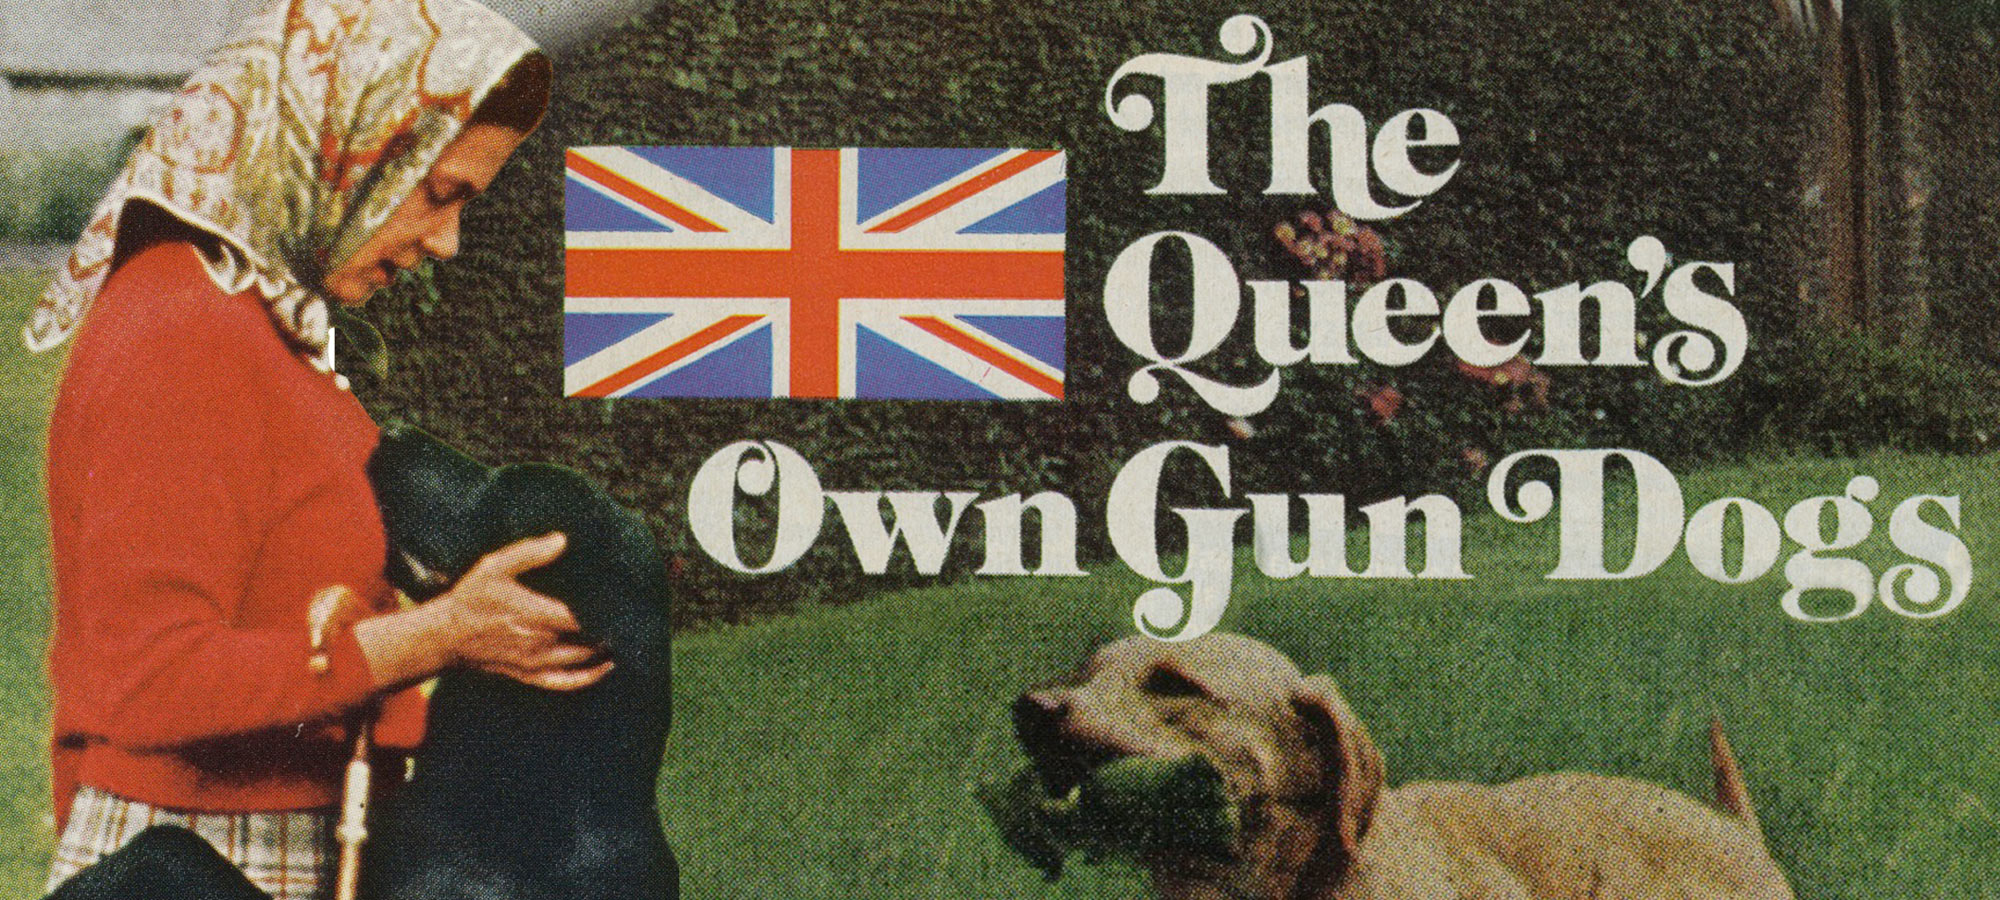 Queen Elizabeth II's Own Gun Dogs | Field & Stream